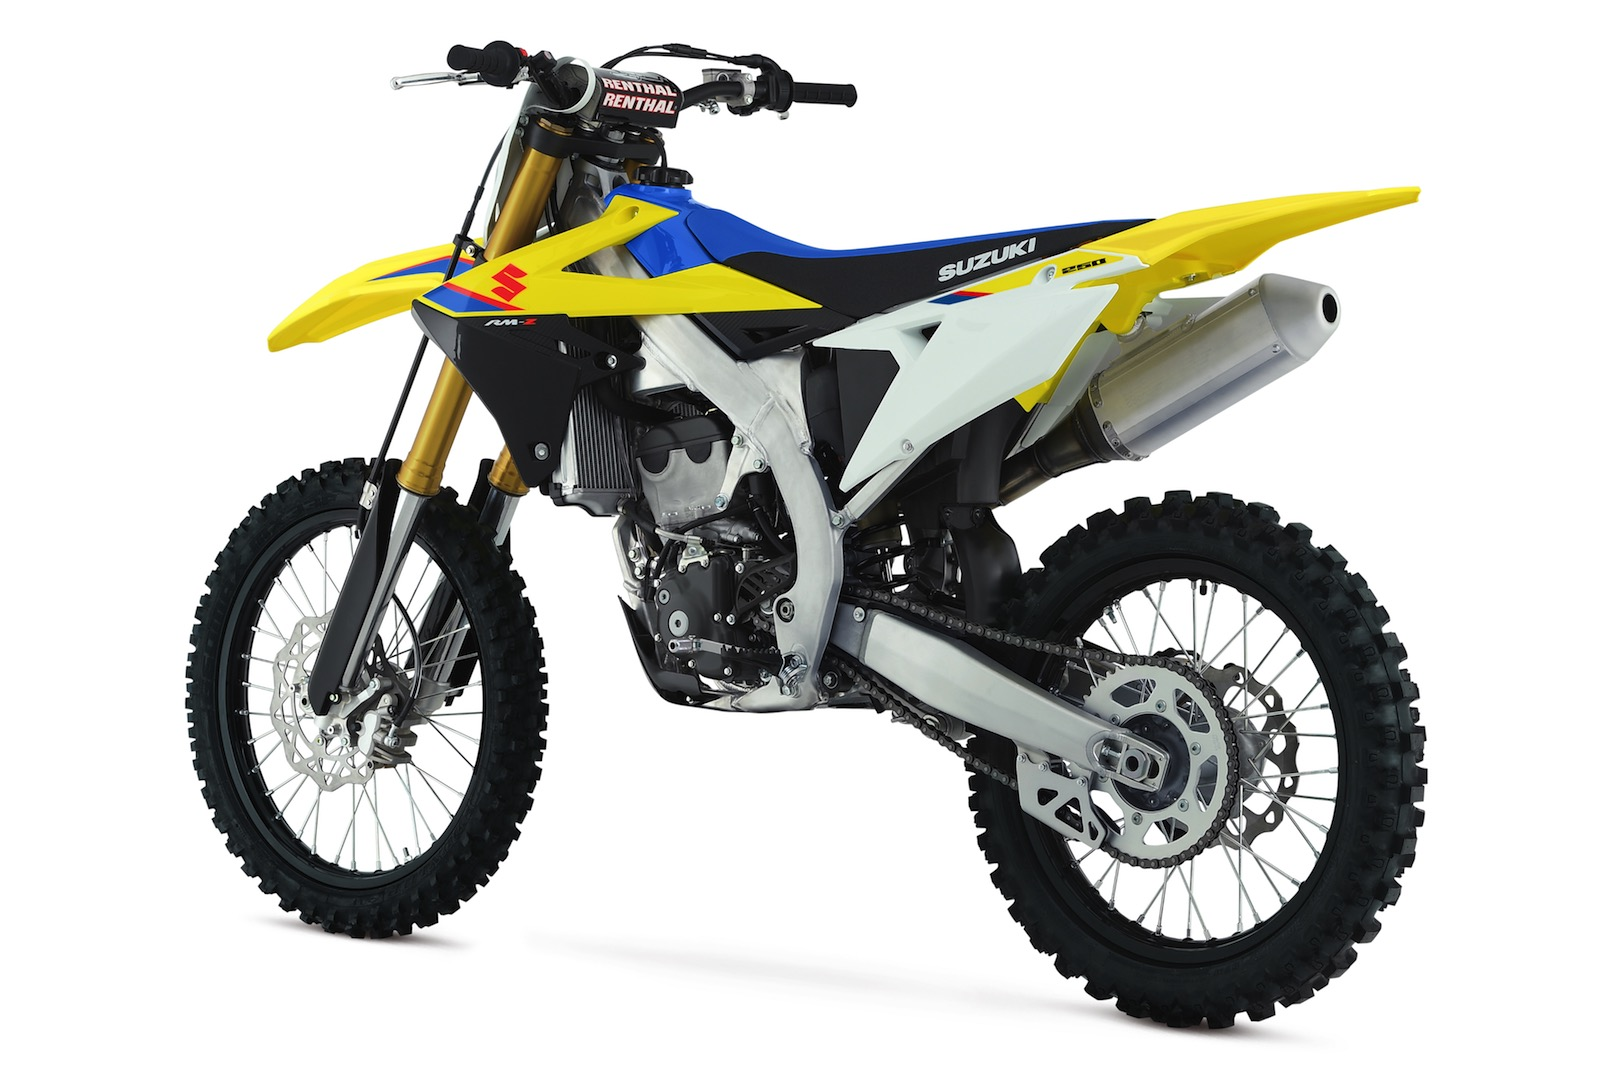 2019-Suzuki-RM-Z250-First-Look-motocross-motorcycle-5.jpg